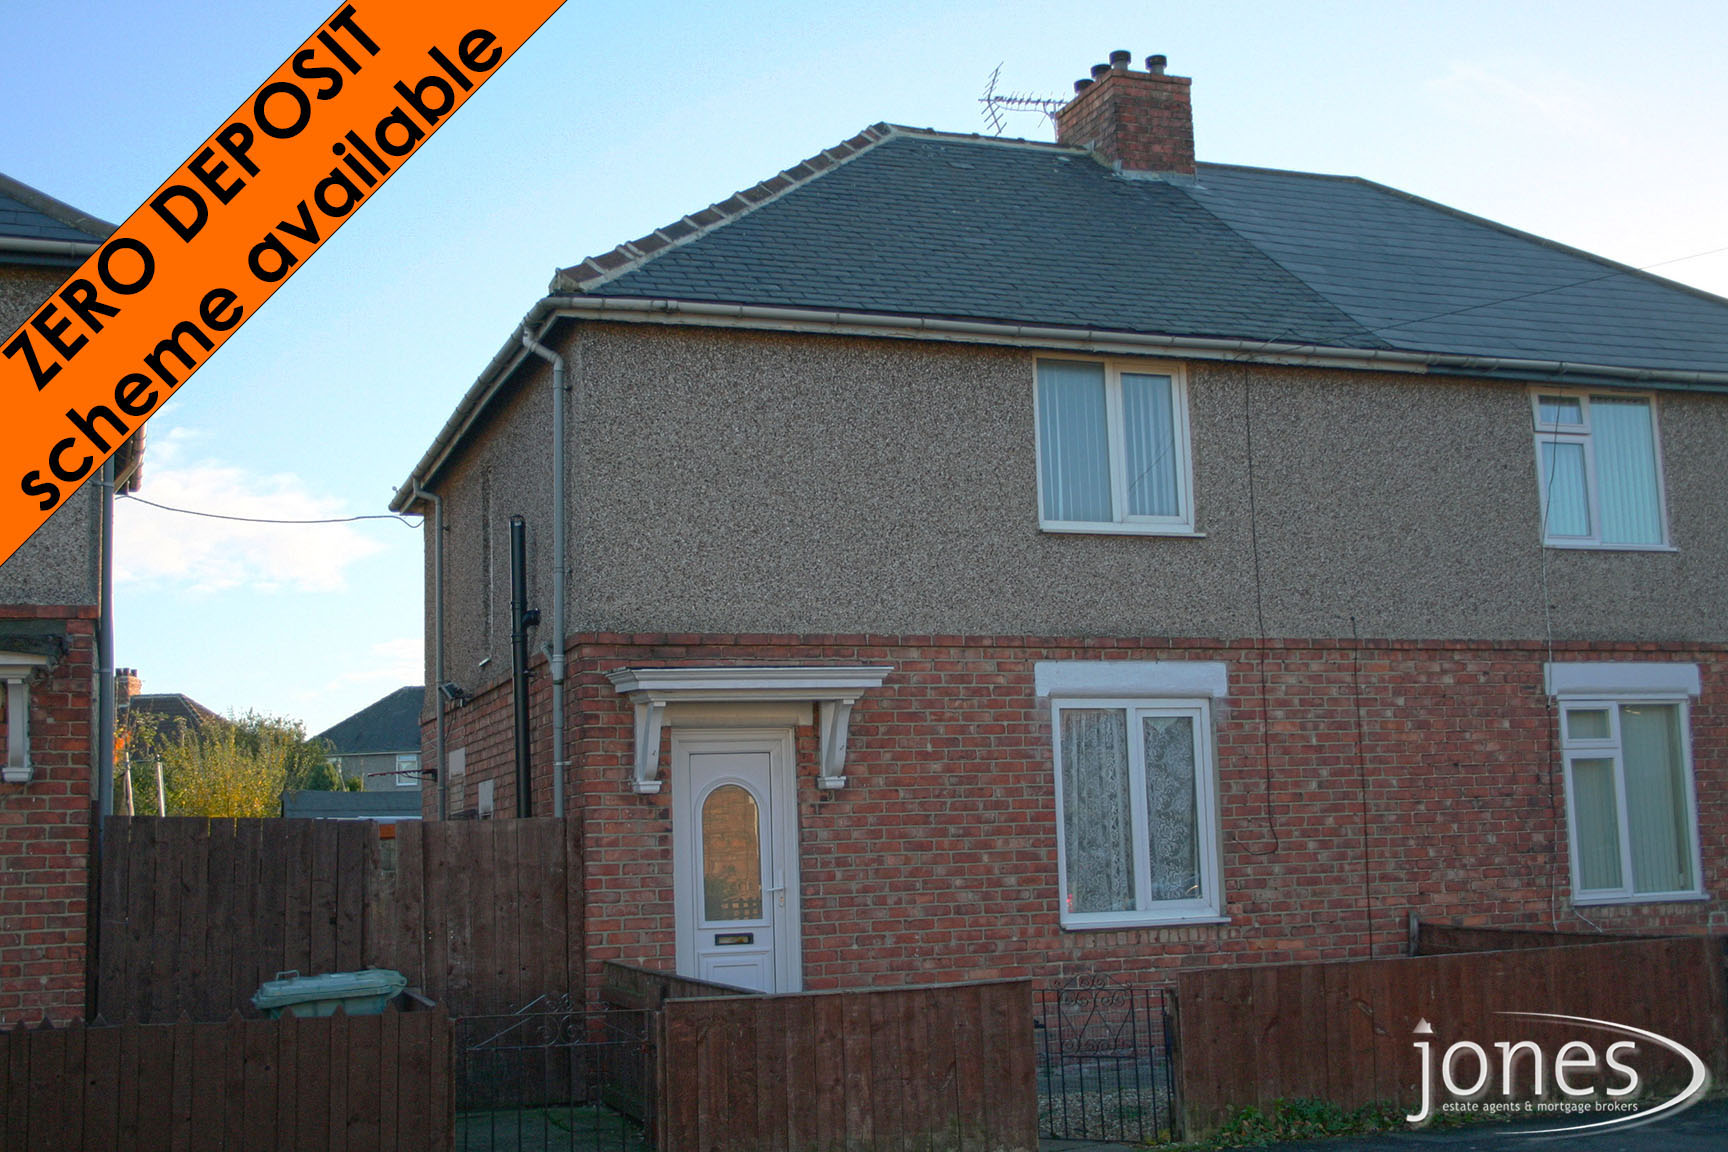 Home for Sale Let - Photo 01 Greta Road,Norton,Stockton on tees,TS20 1BA